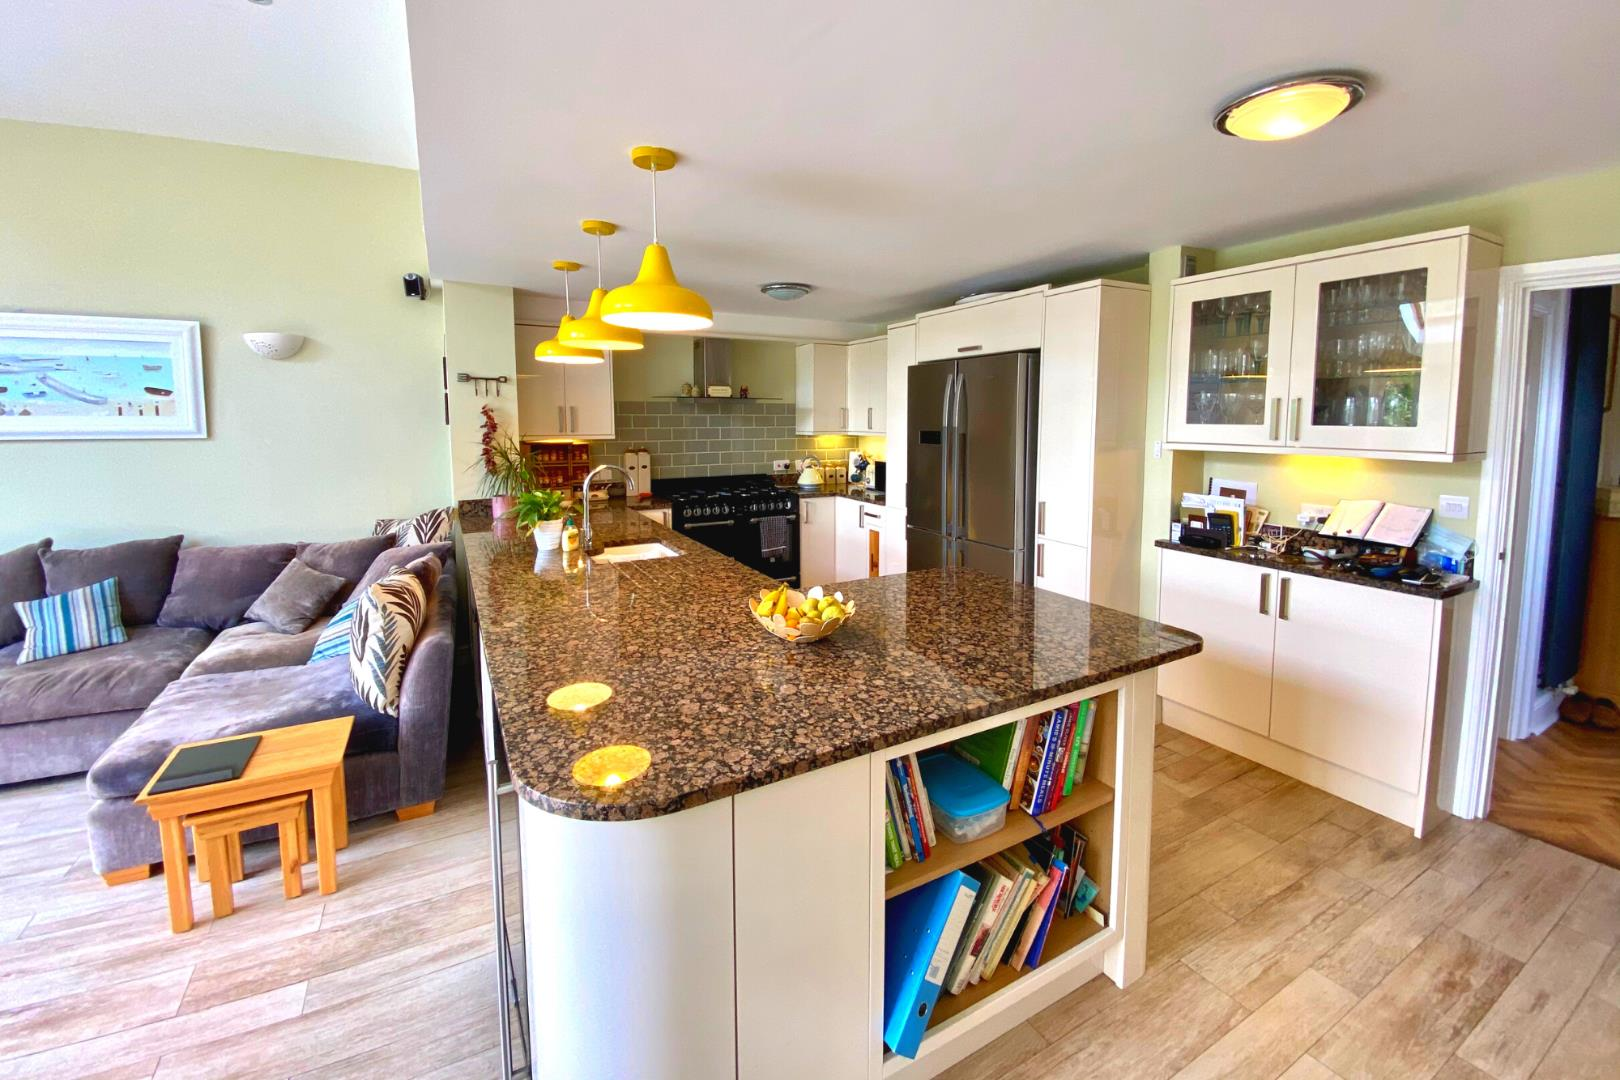 3 bed house for sale in Church Crookham  - Property Image 16